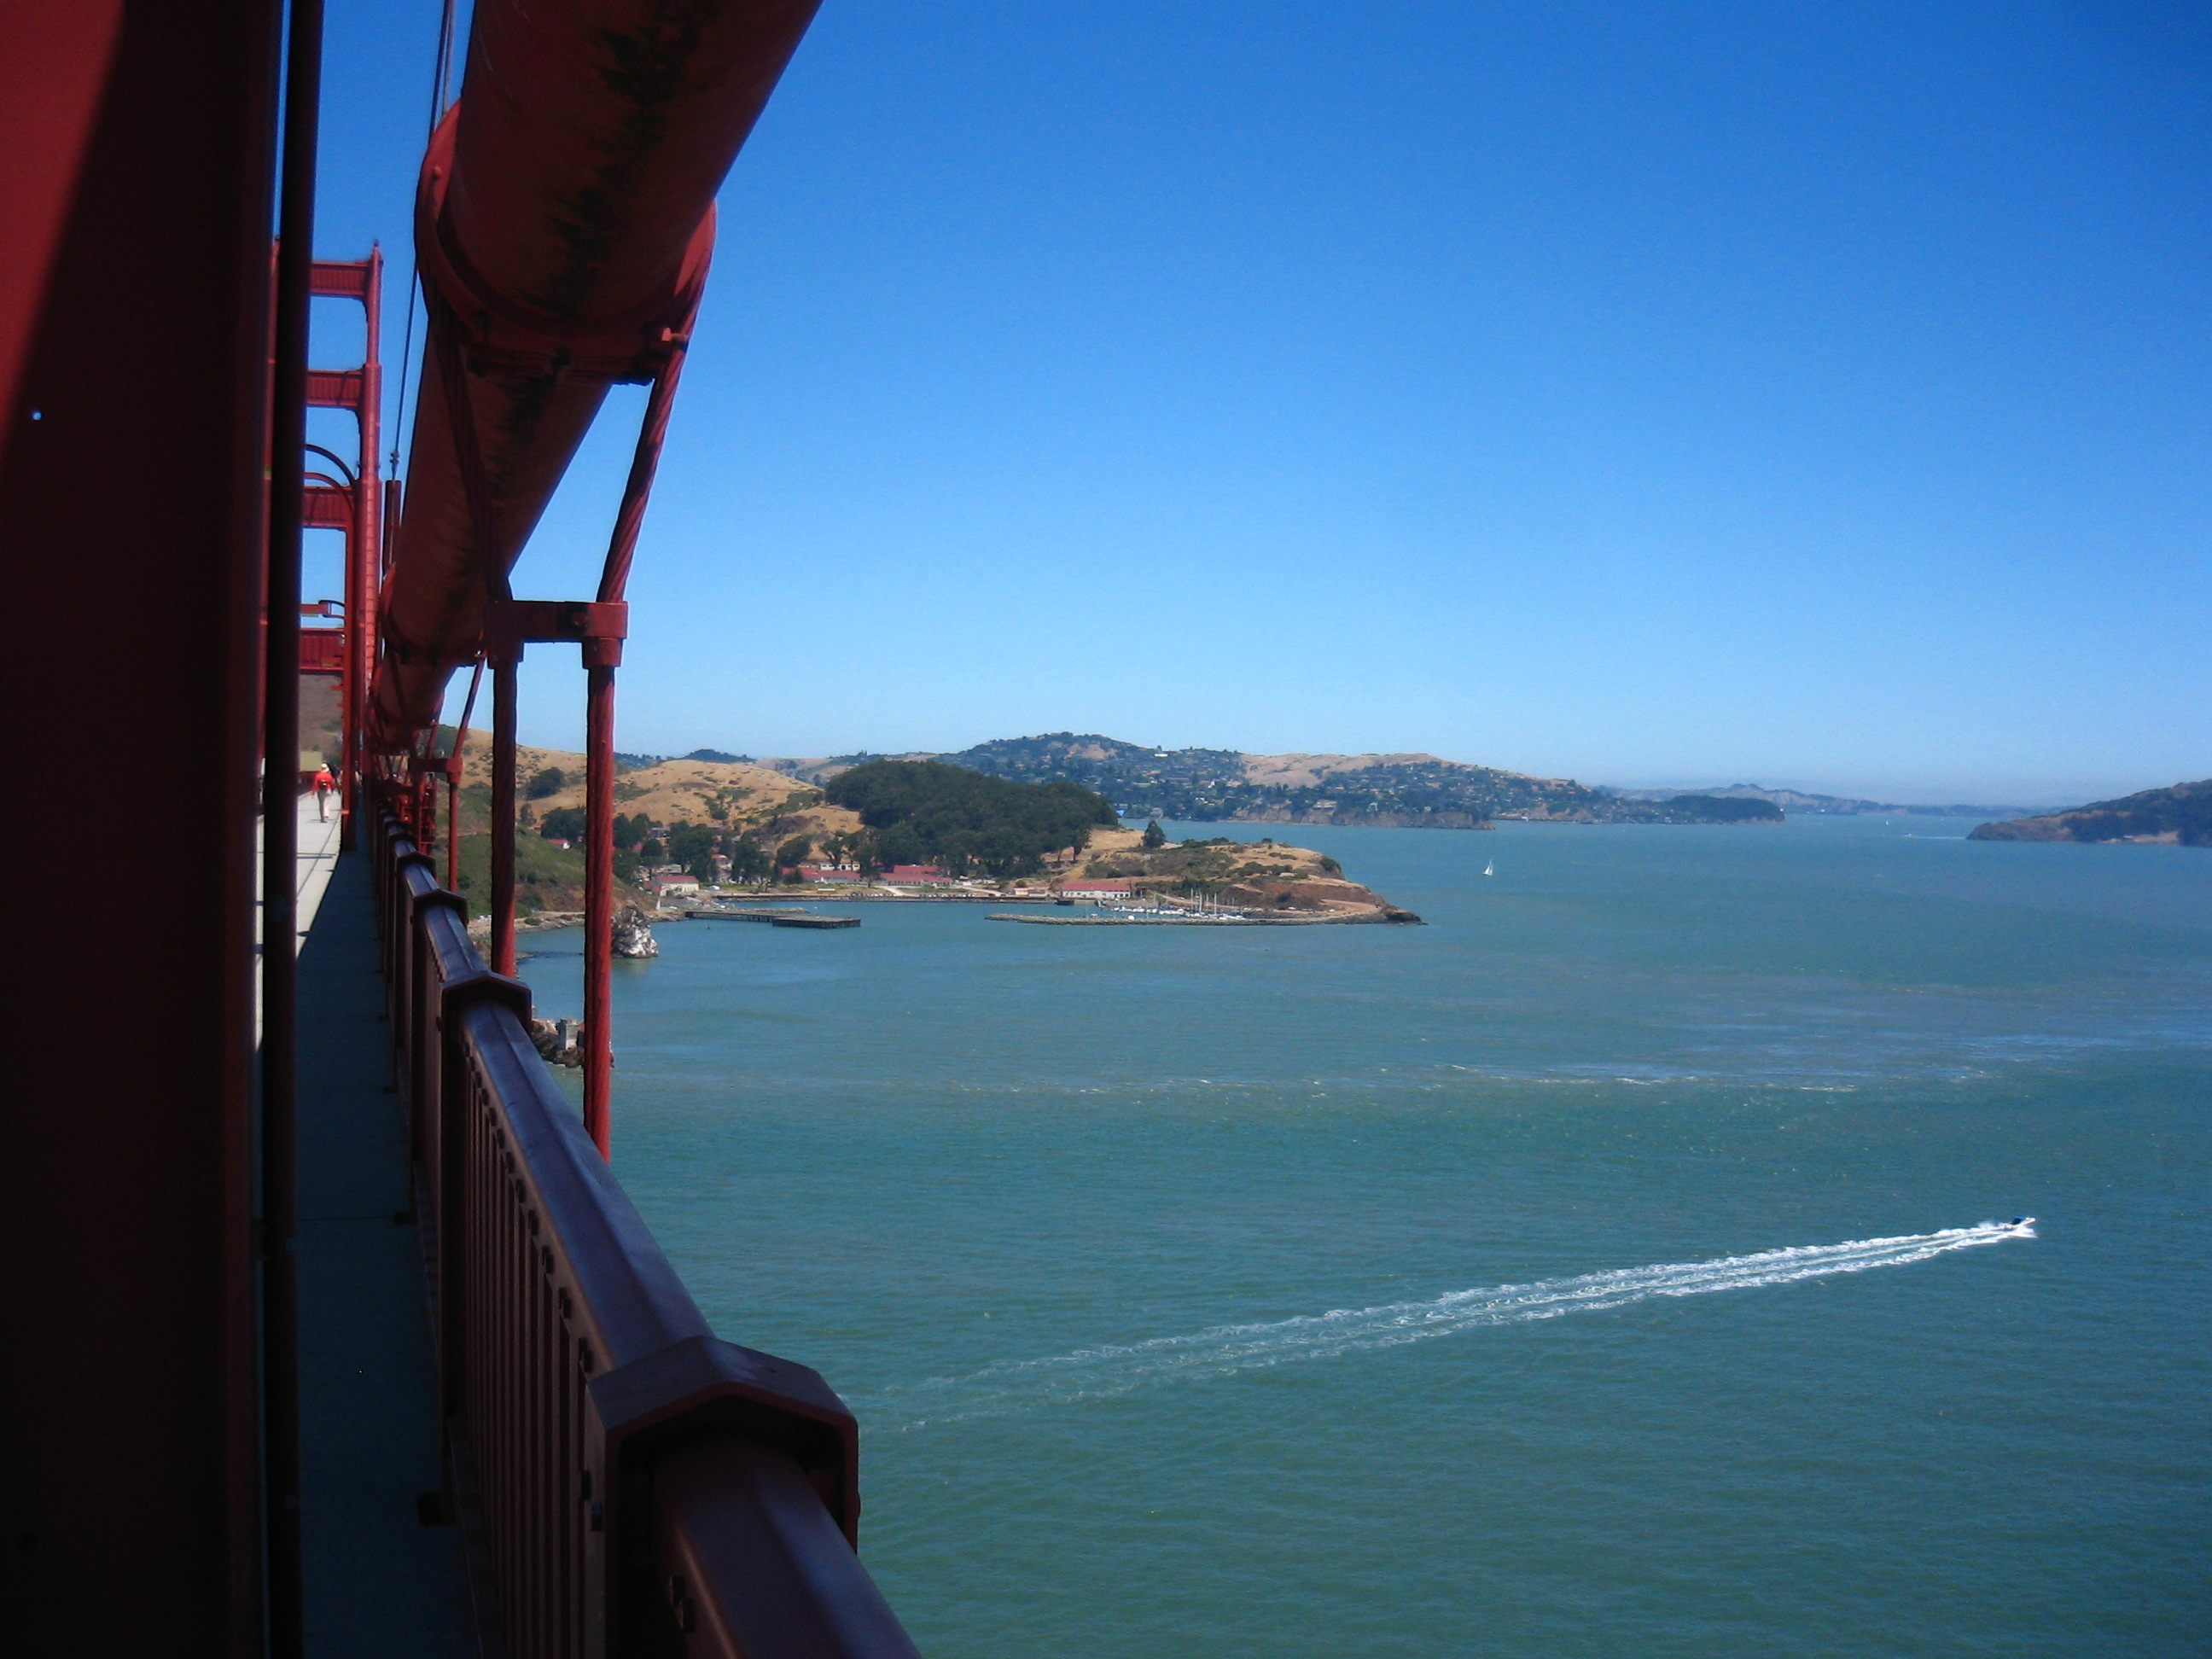 Towards Sausalito